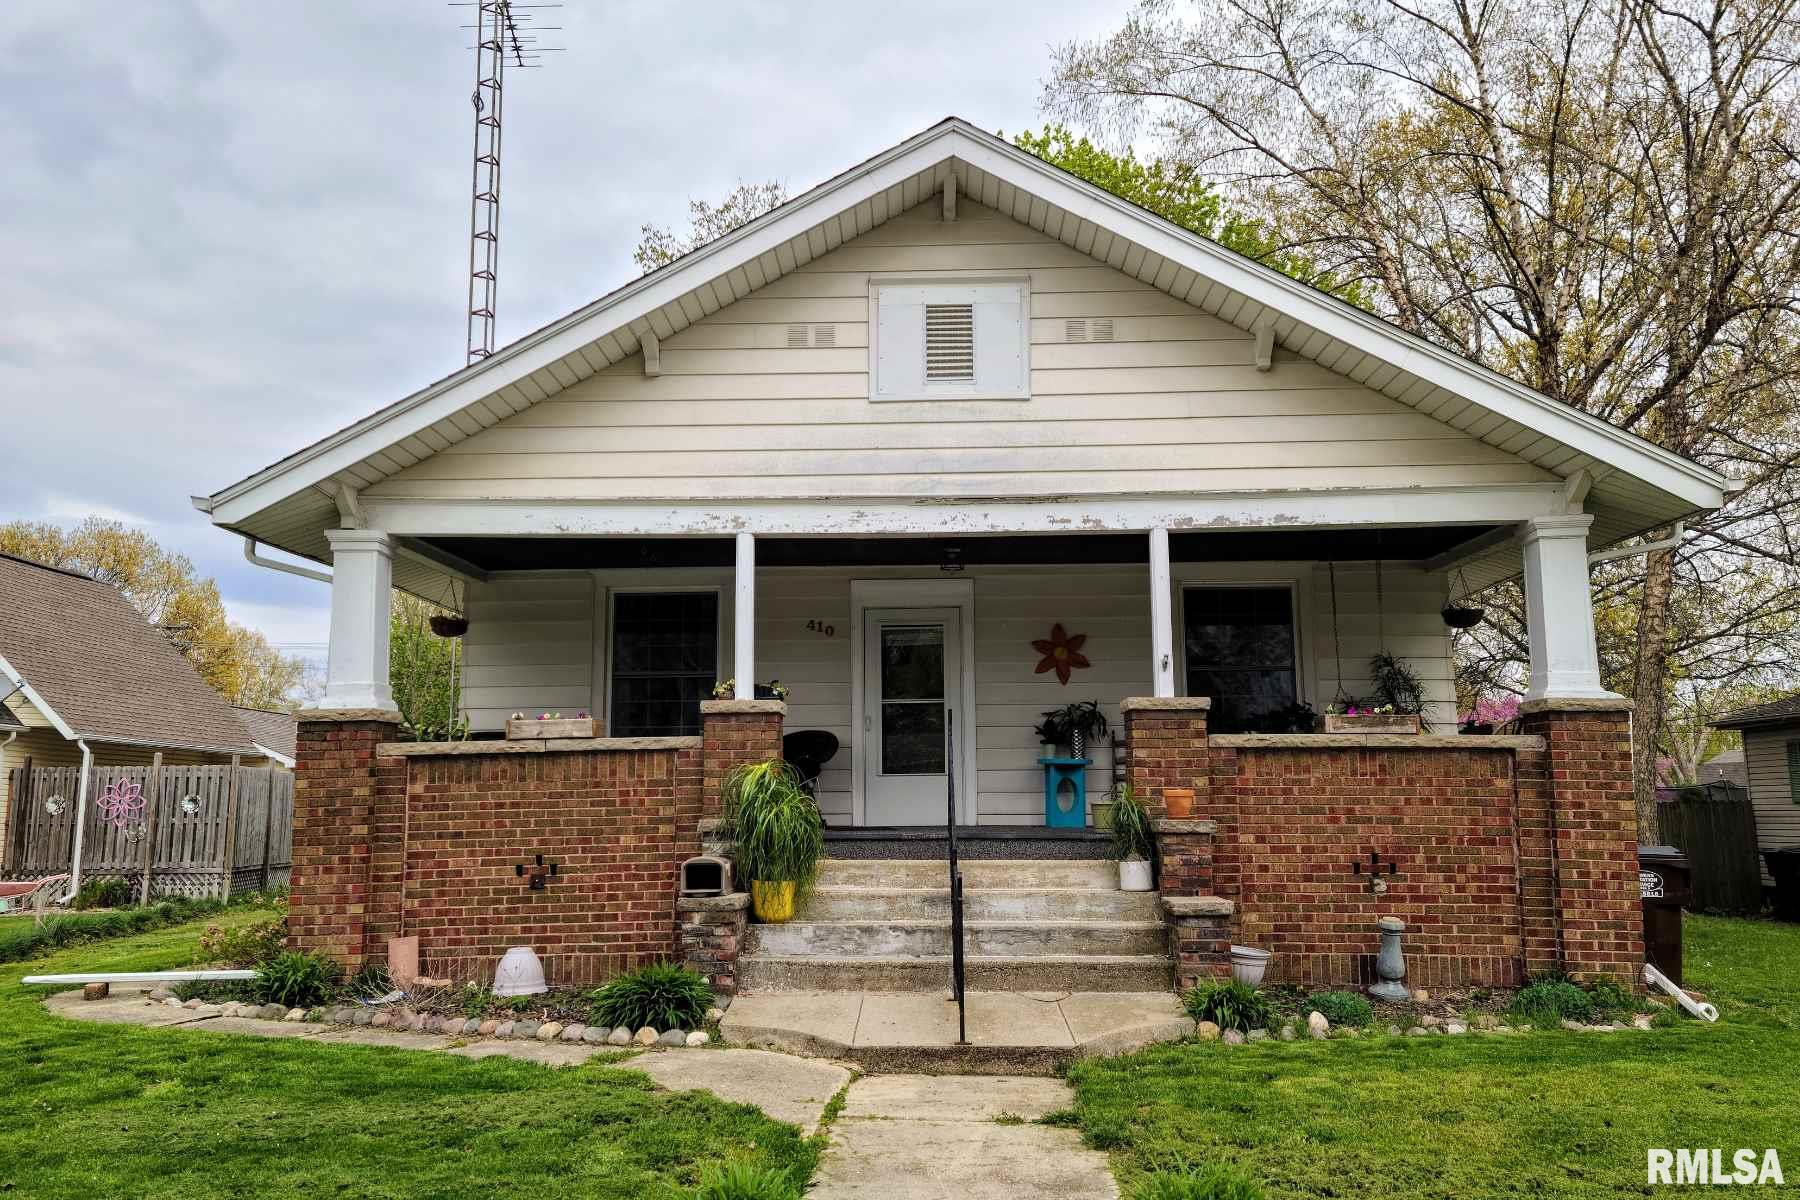 410 S CHURCH Property Photo - Virden, IL real estate listing